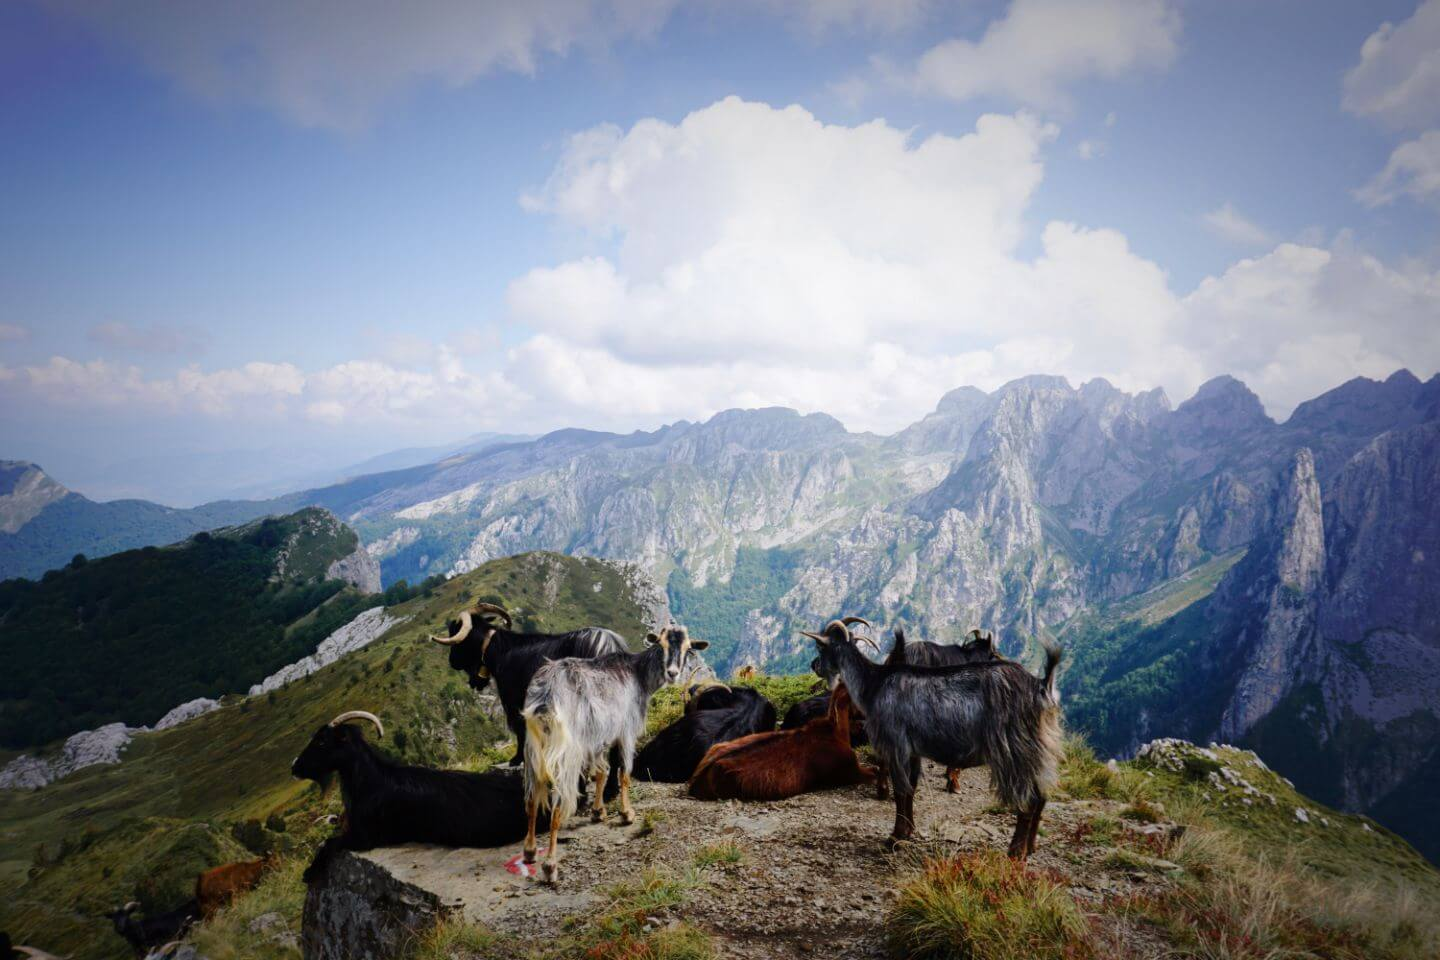 Montenegro's Accursed Moutnains, A guide to visiting Prokletije National Park